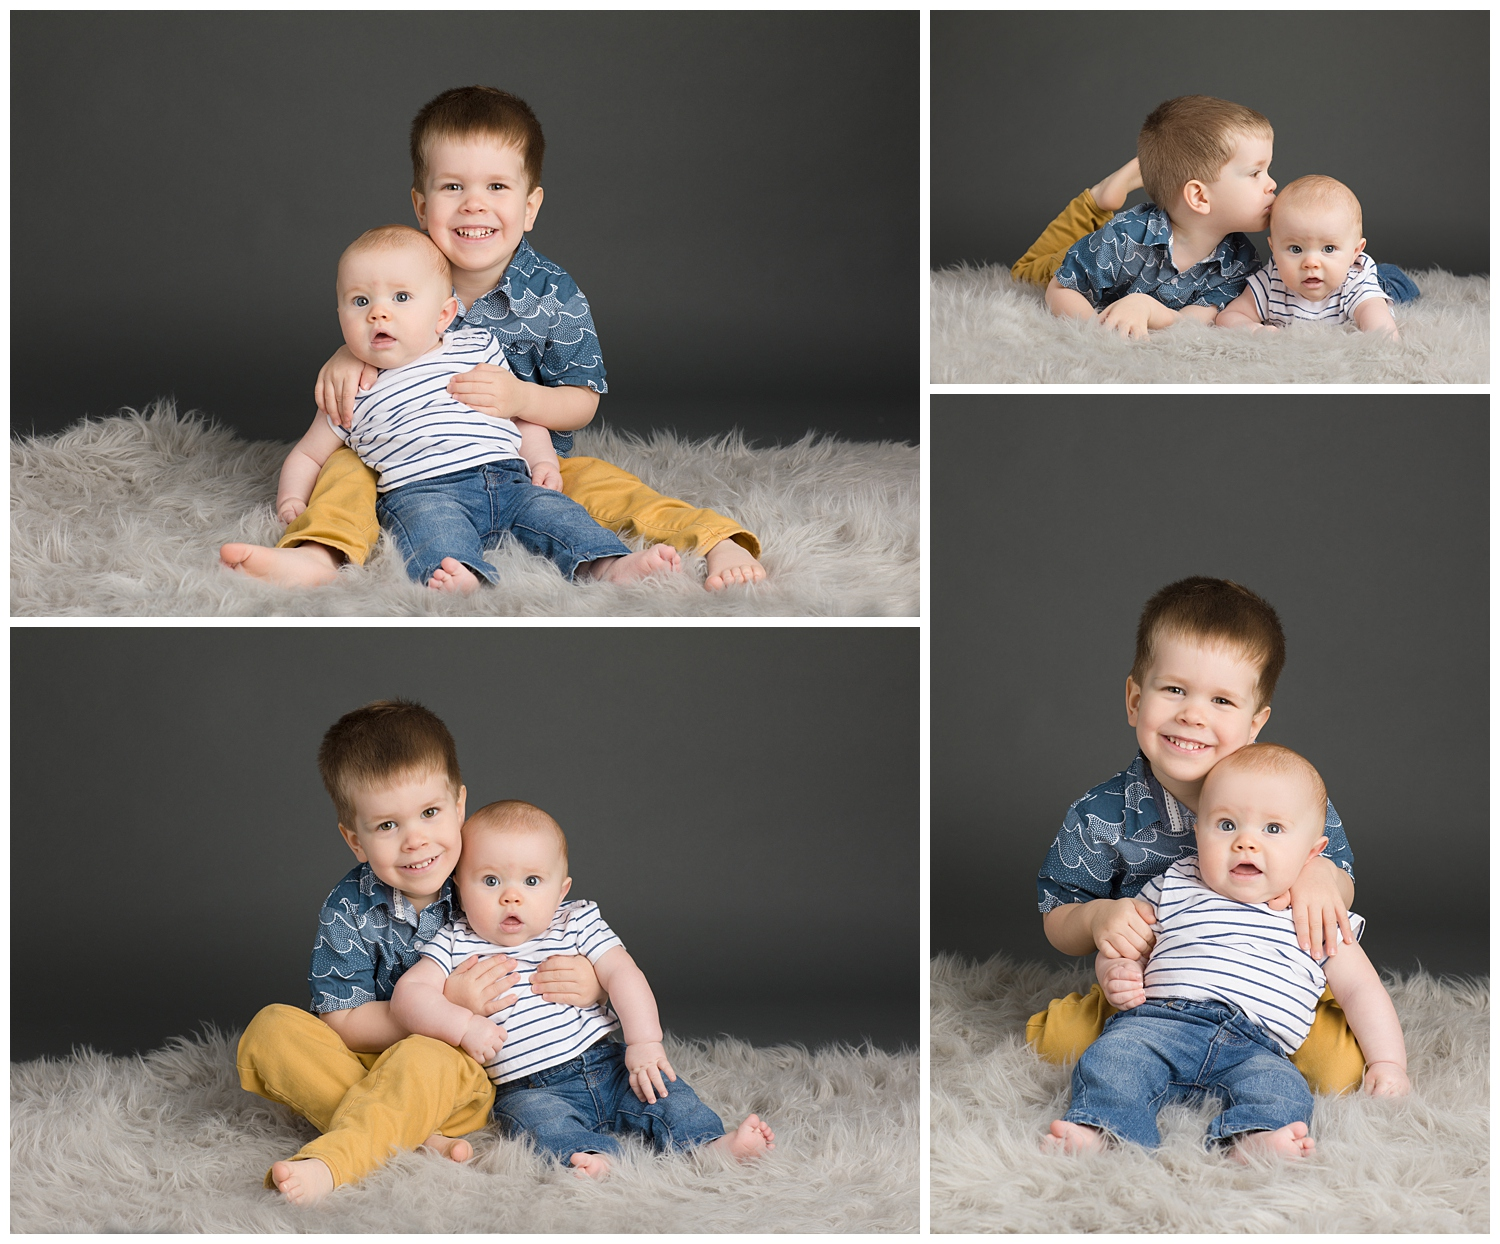 photos of two young brothers in a photography studio